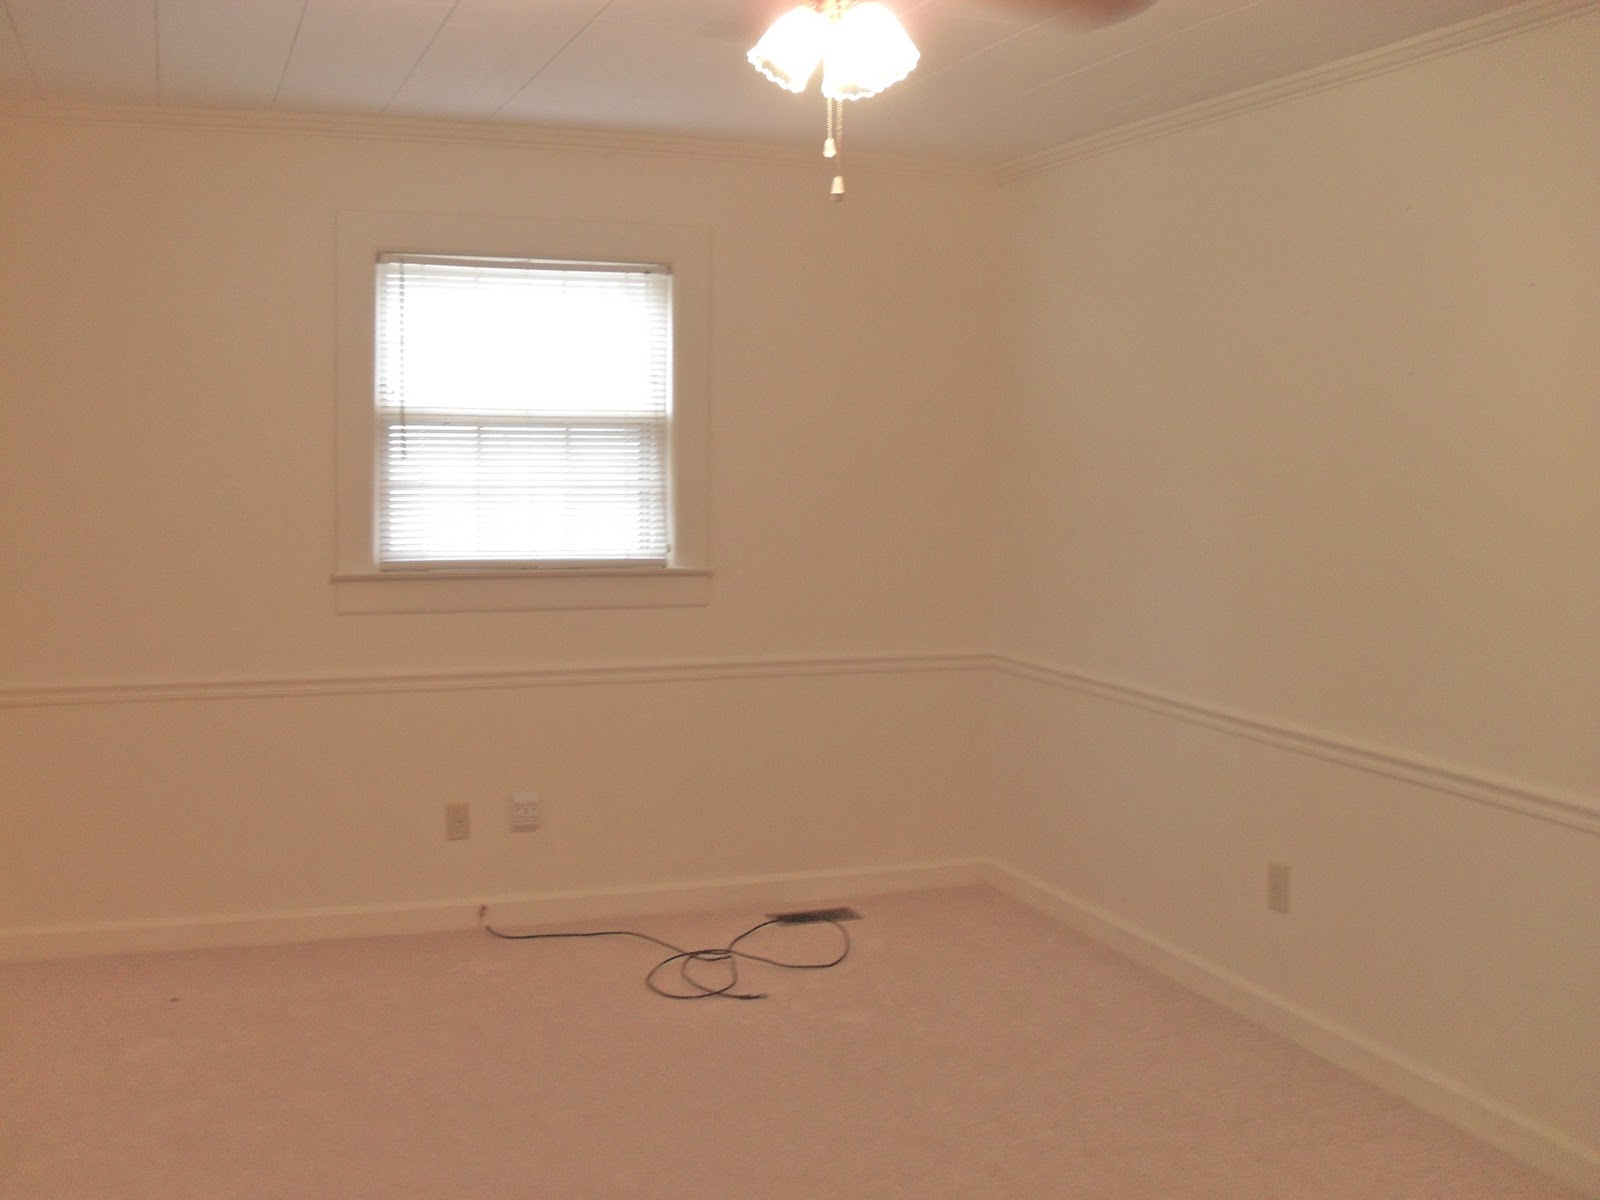 The Remodeled Life: Living Room Update